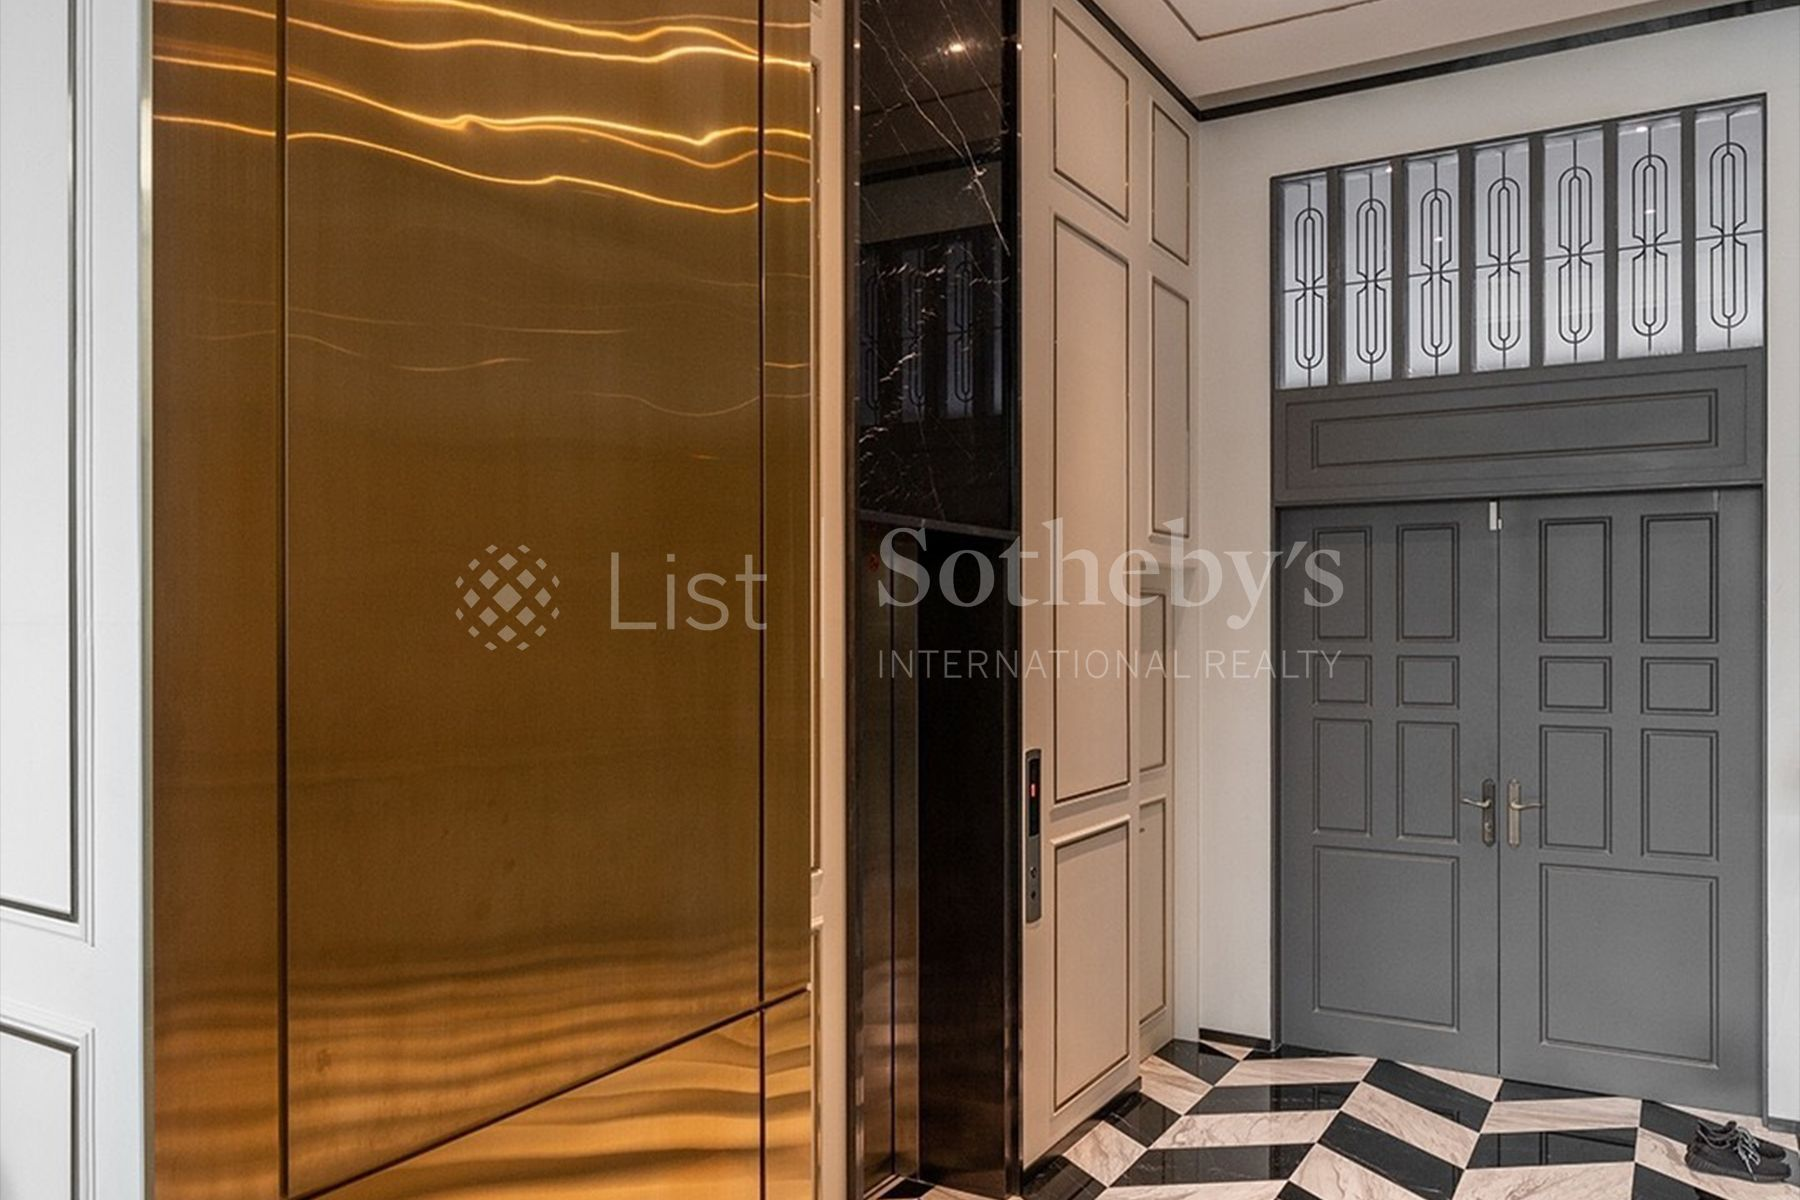 malton-private-residences-sukhumvit-31 5